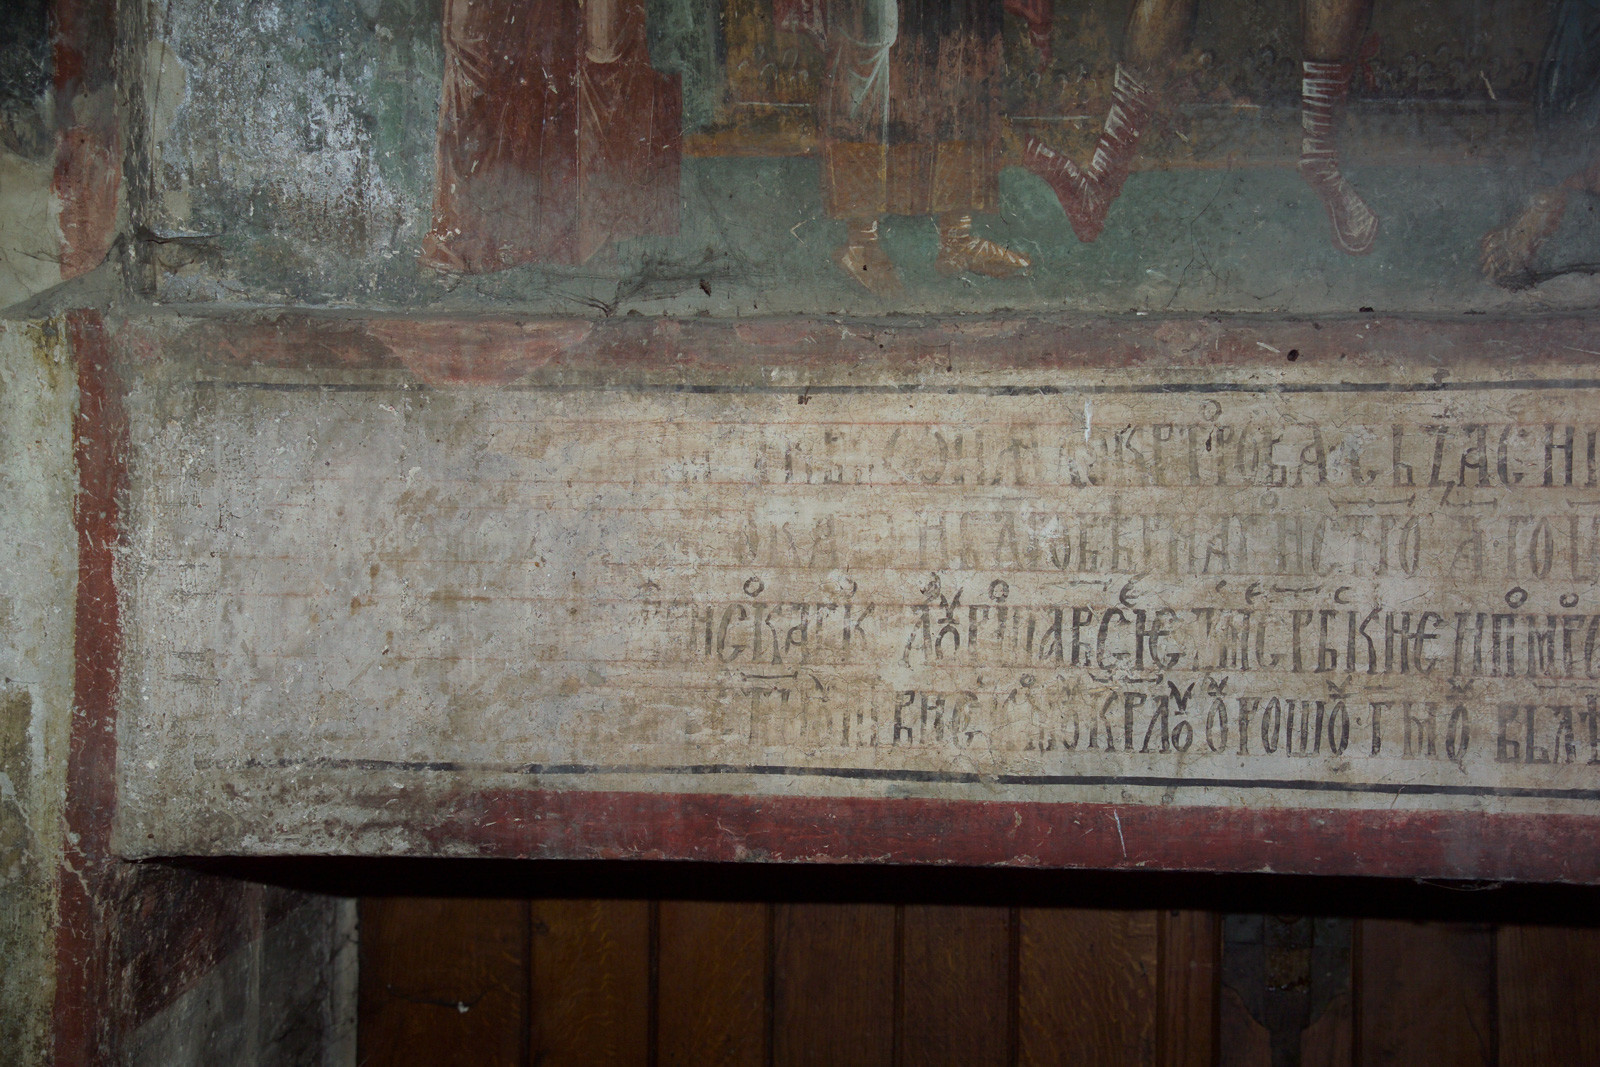 77 Founder's Inscription, dated 1346-47 AD